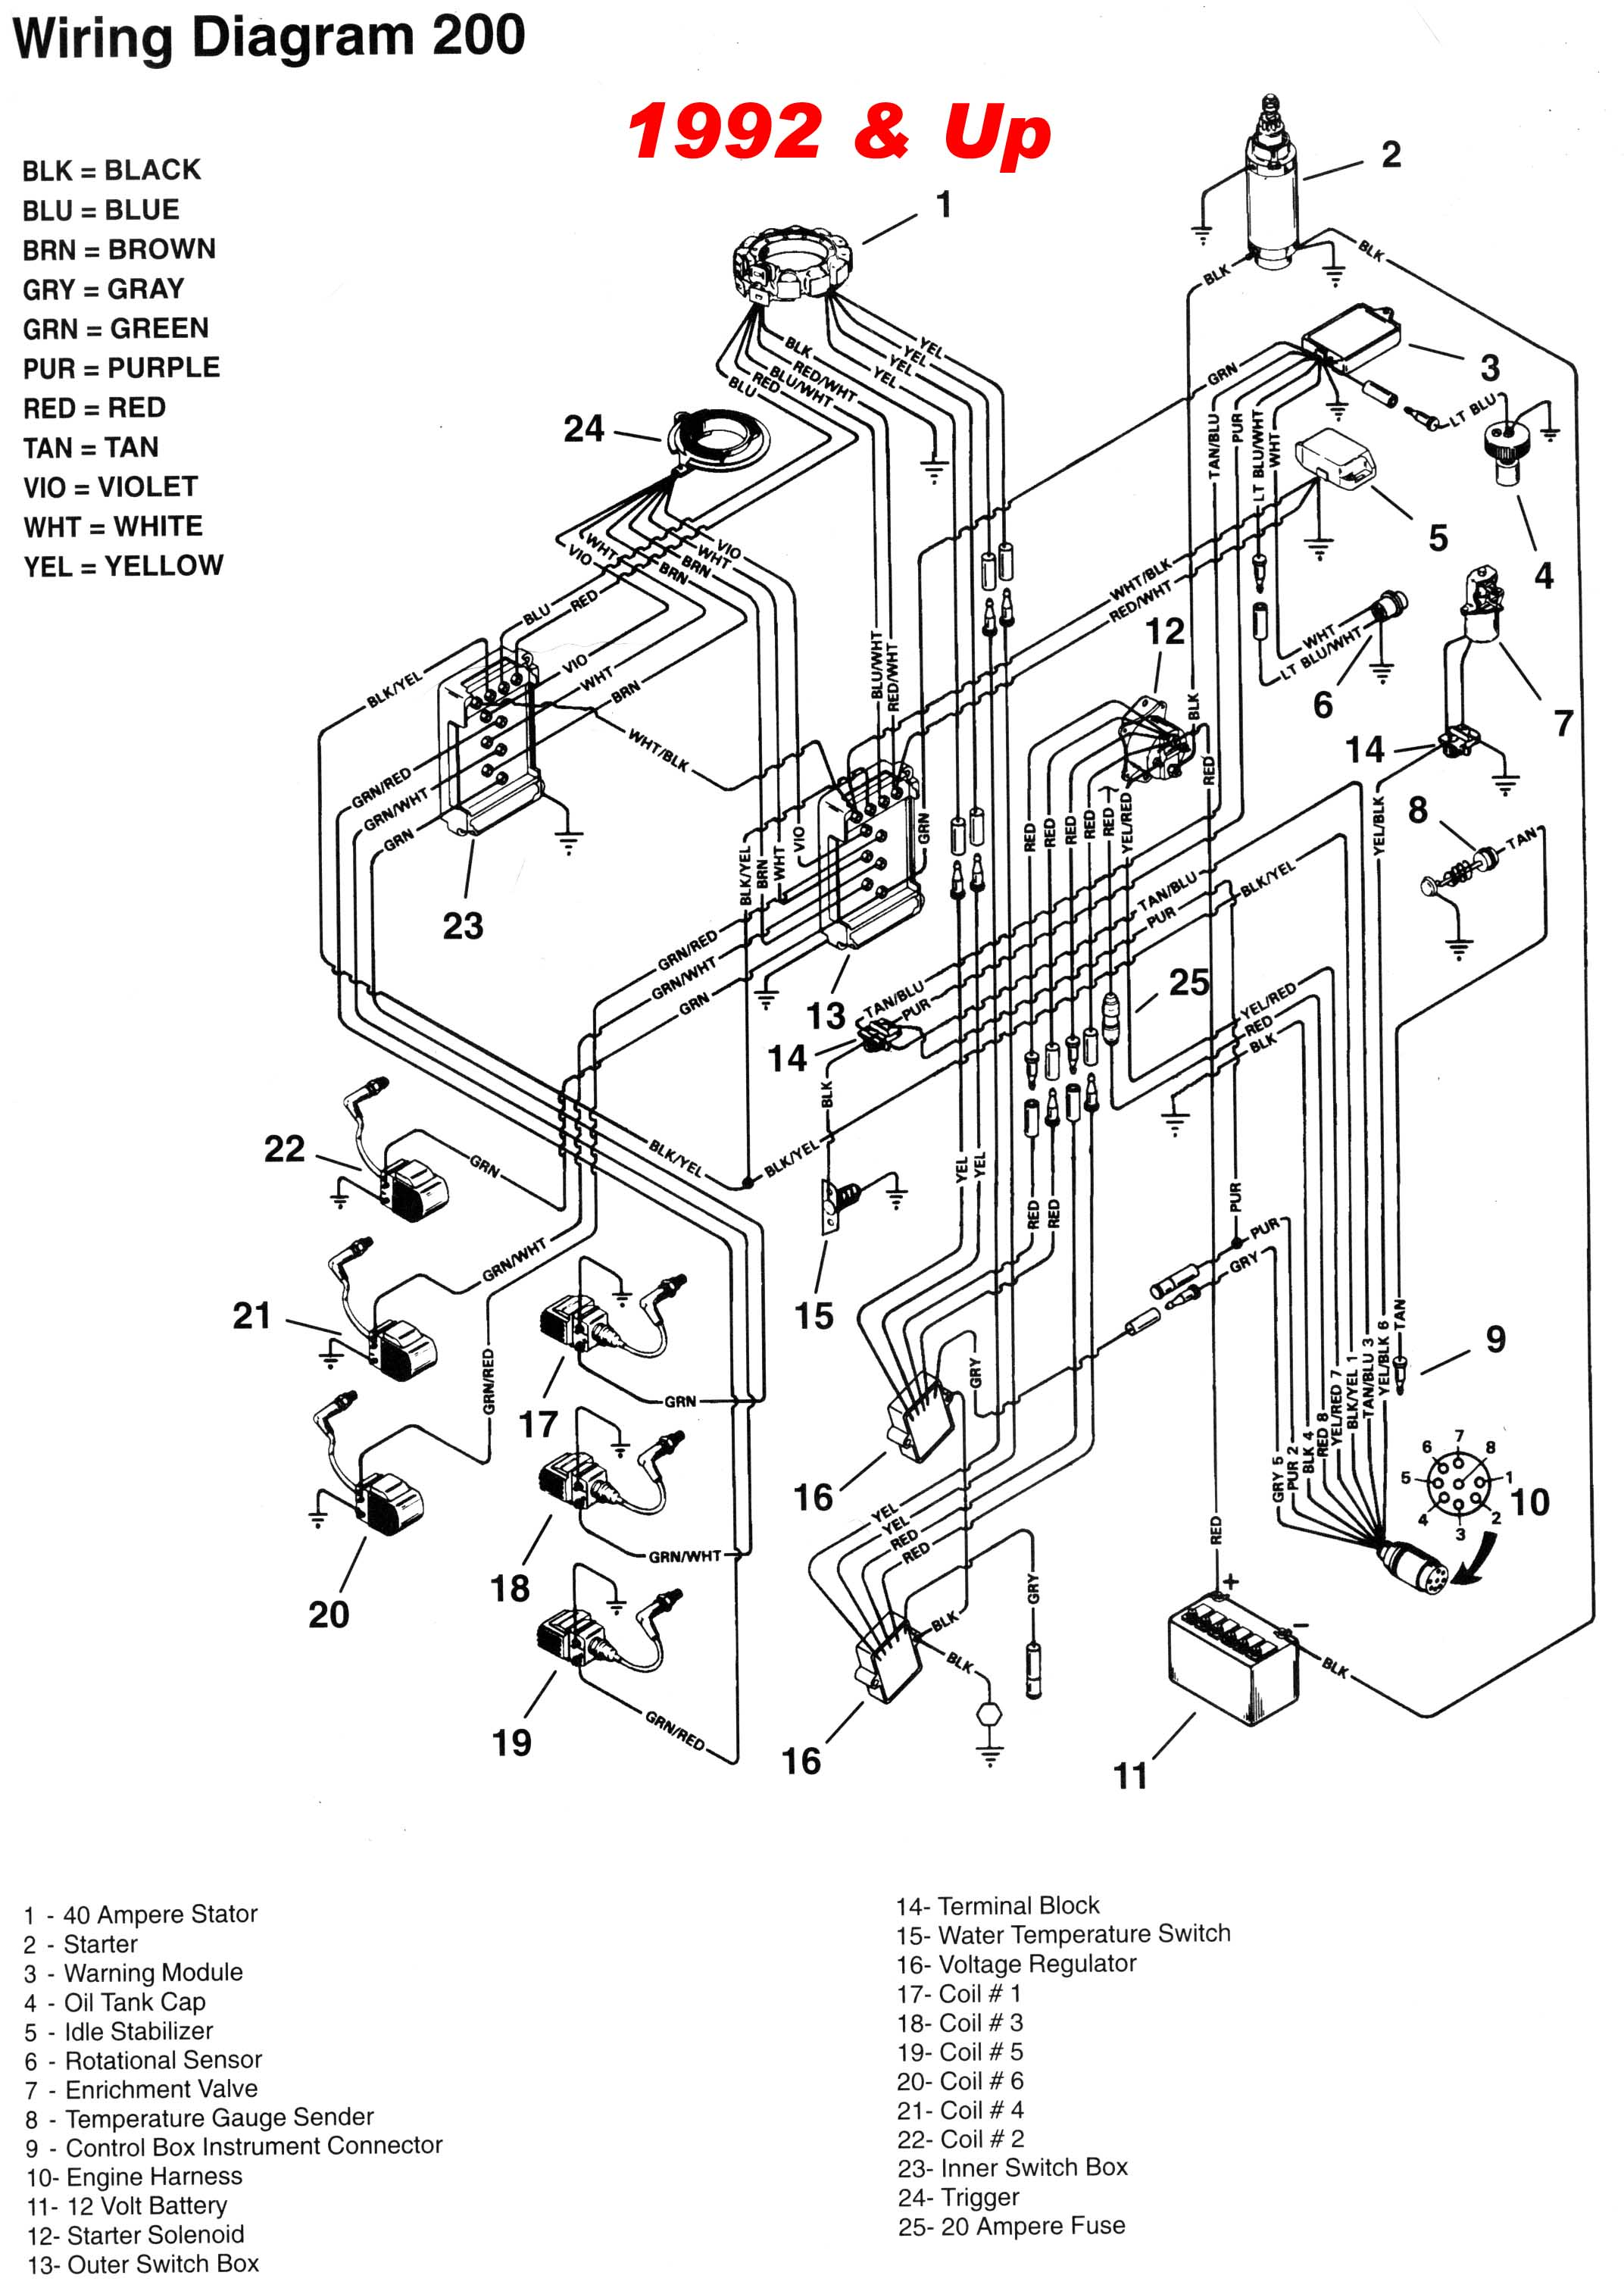 1994 150 mariner wiring harness detailed schematics diagram rh jvpacks com  Force Outboard Wiring Diagram Force Outboard Wiring Diagram